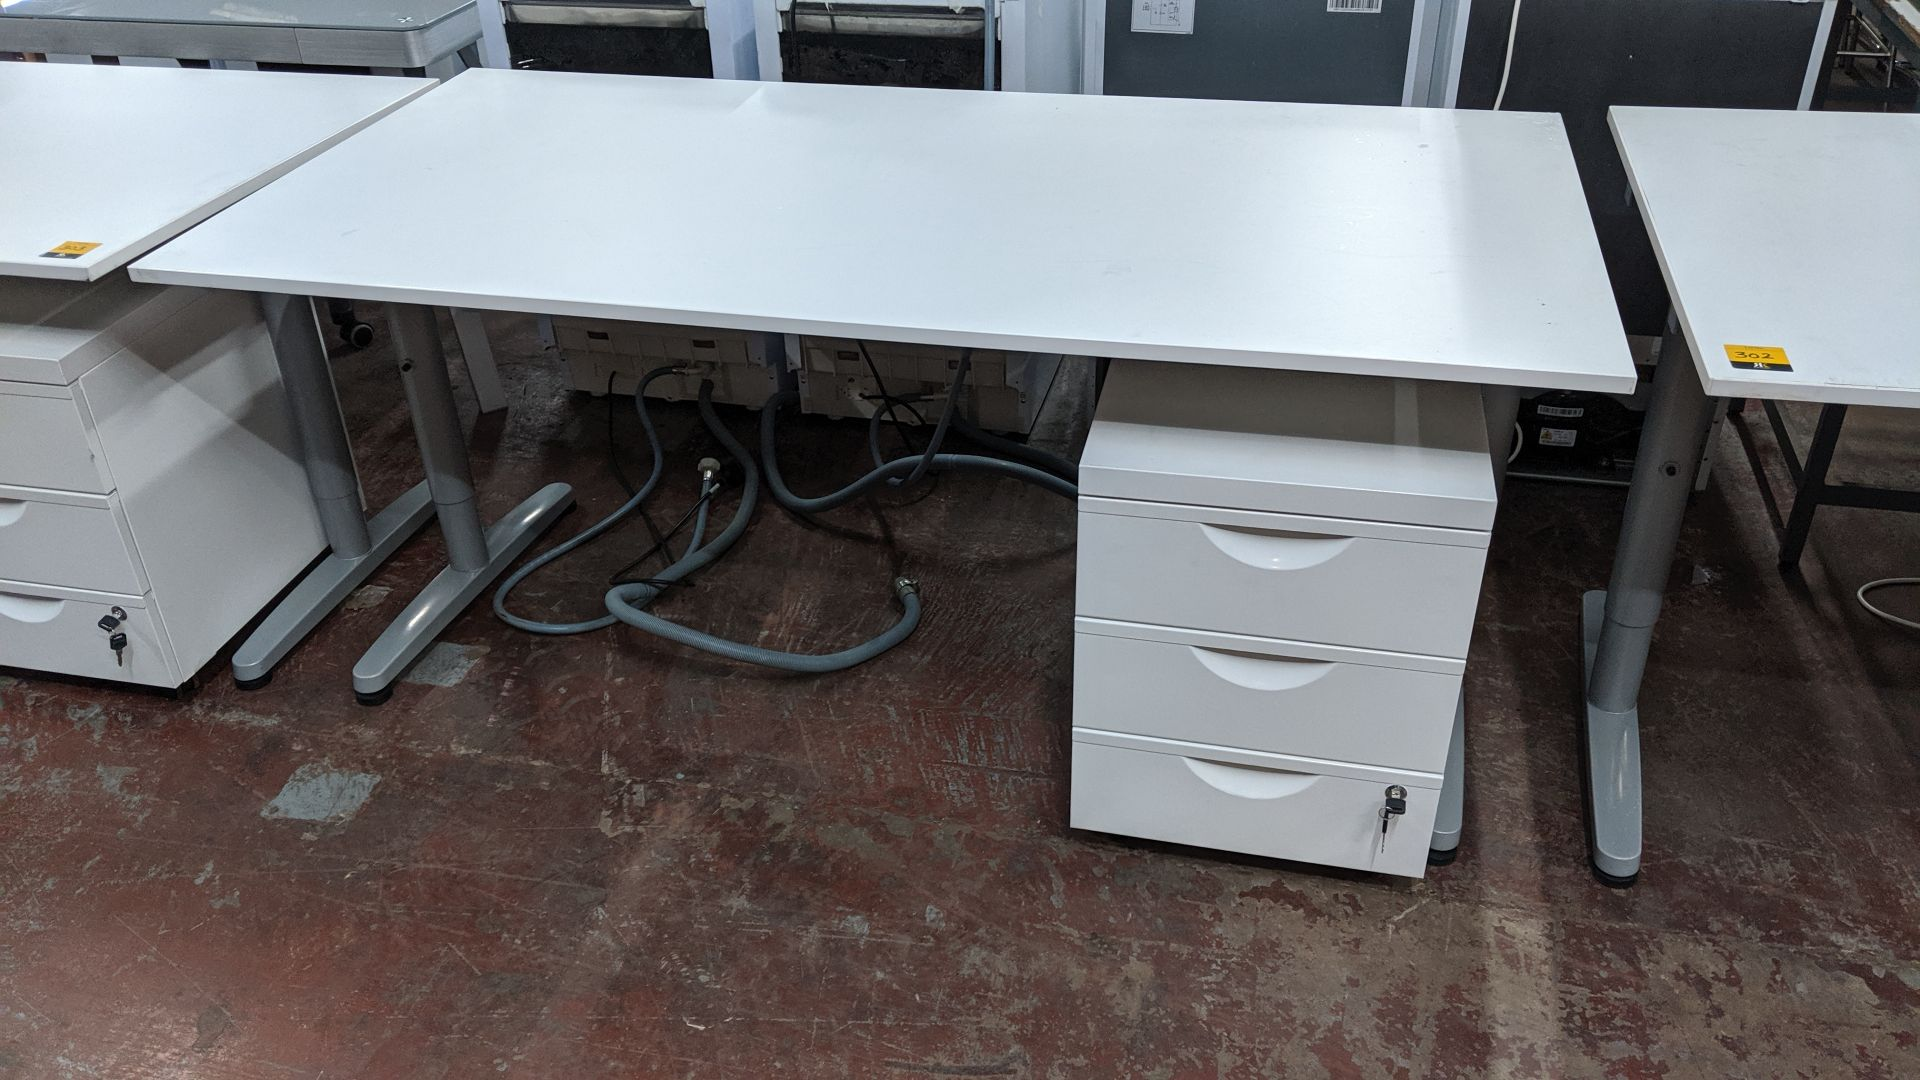 Lot 302 - 2 off matching large white tables/desks, 160 x 80cm, each with matching mobile pedestal & extendable